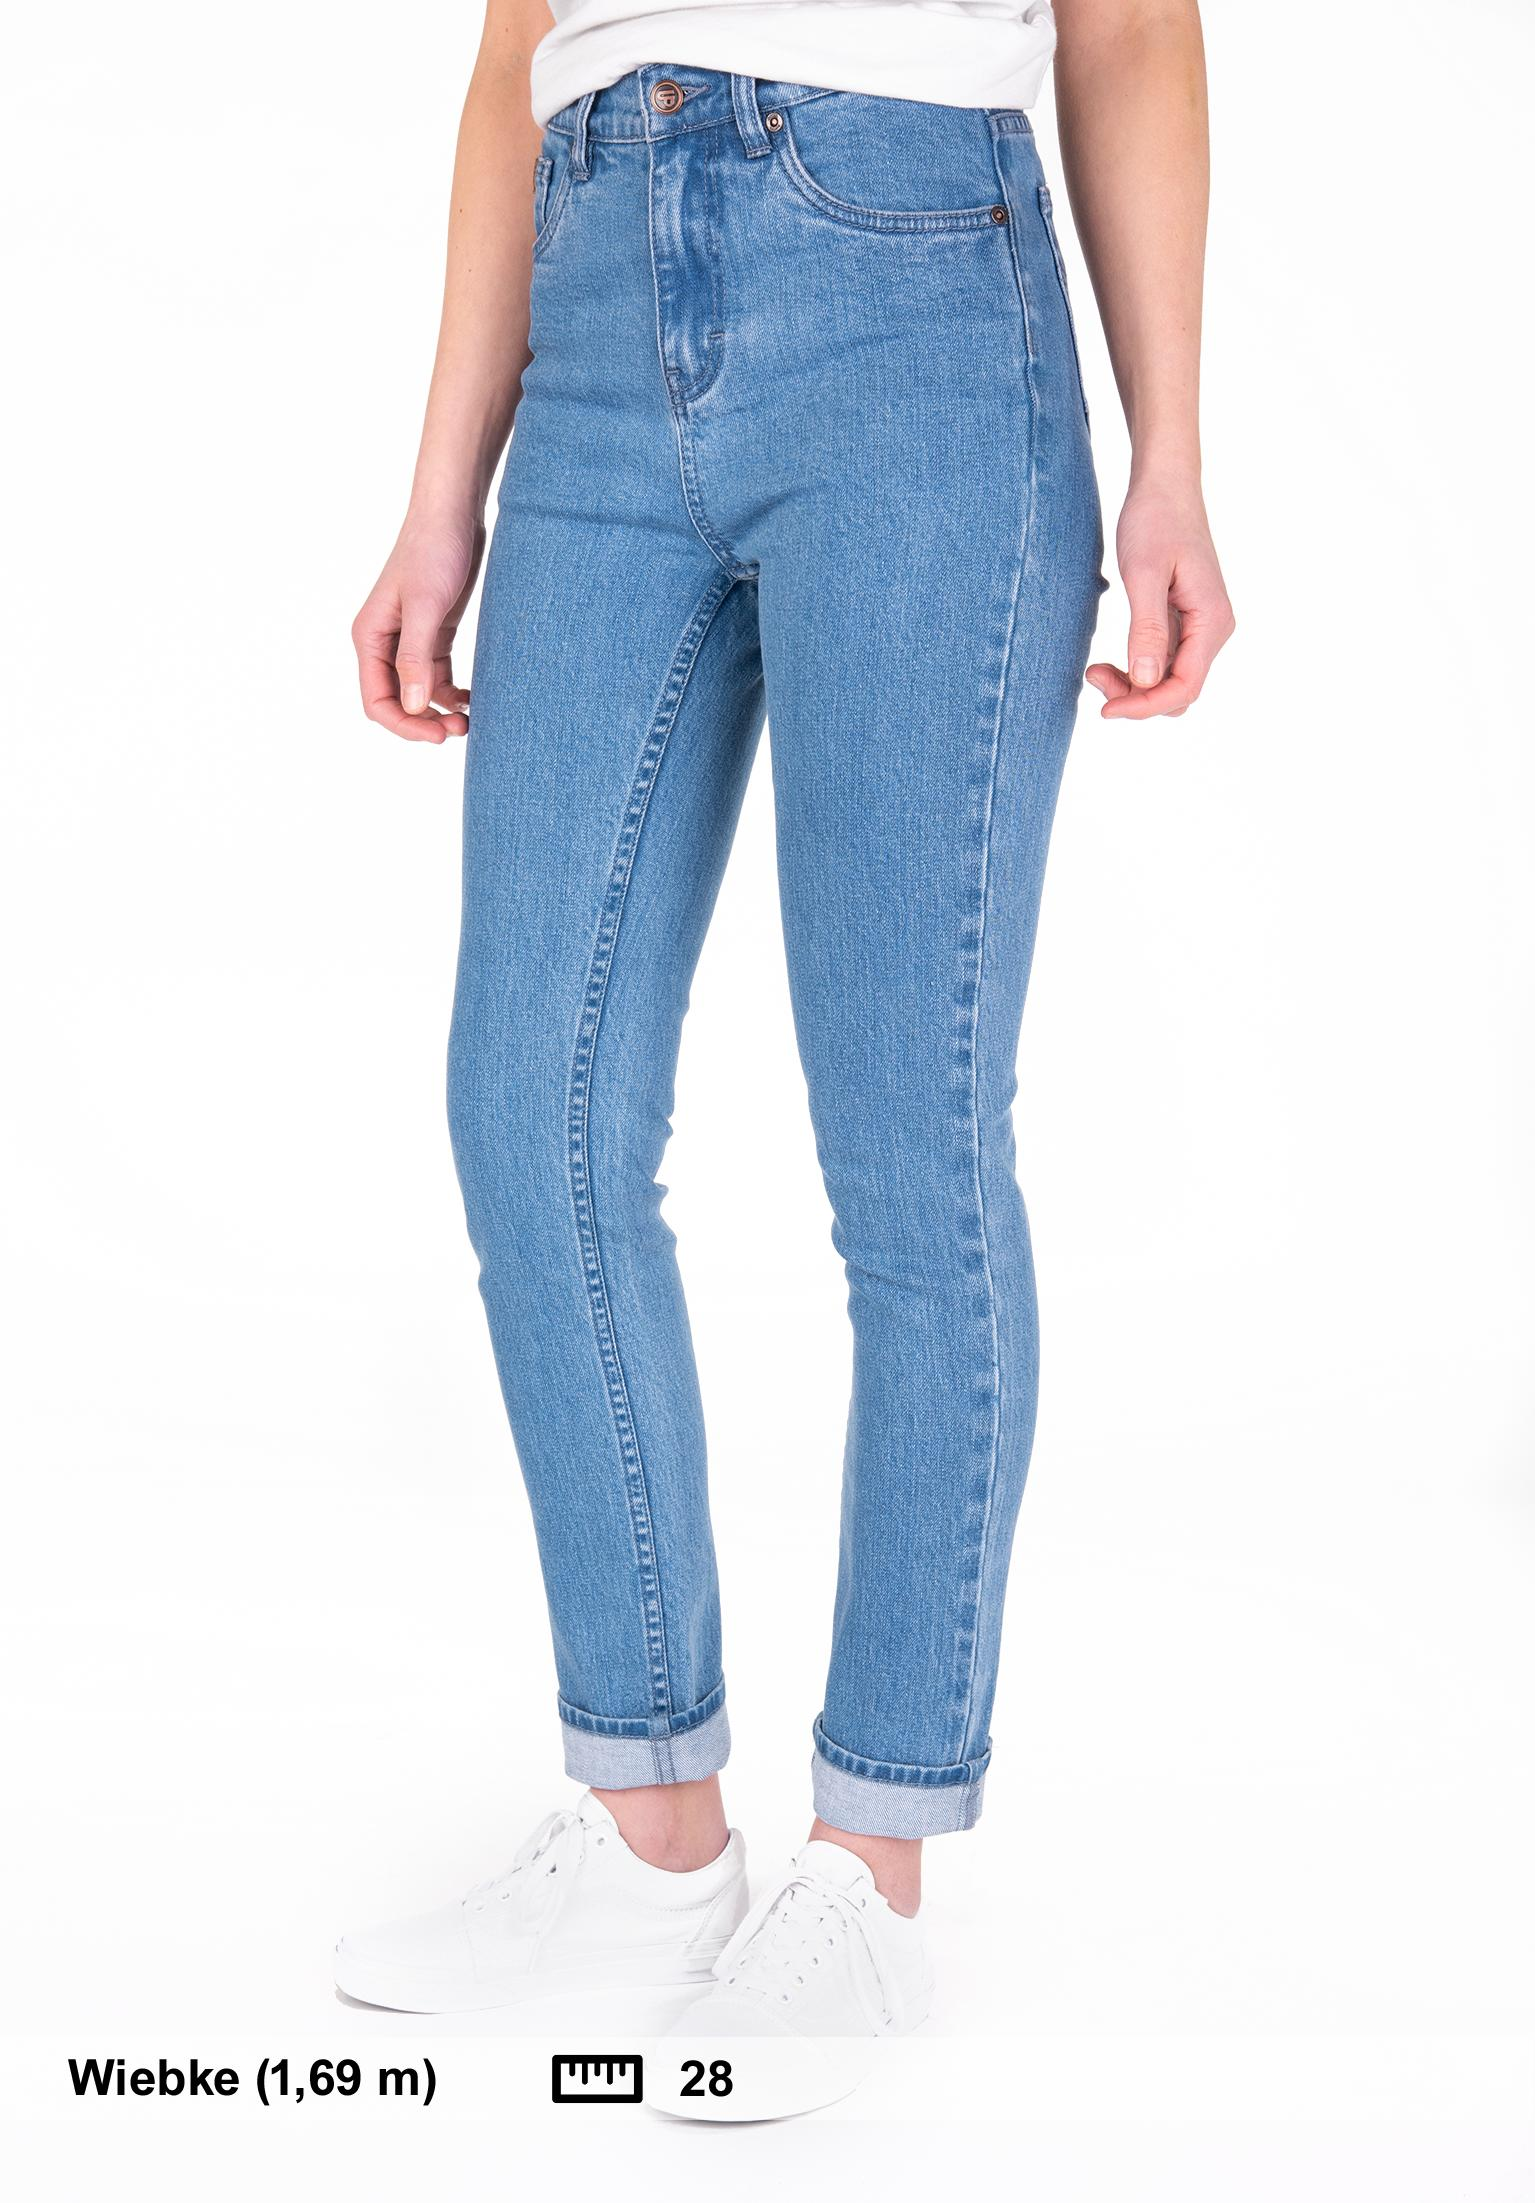 35f5d74312fb Buy pants and jeans for women in the Titus Onlineshop